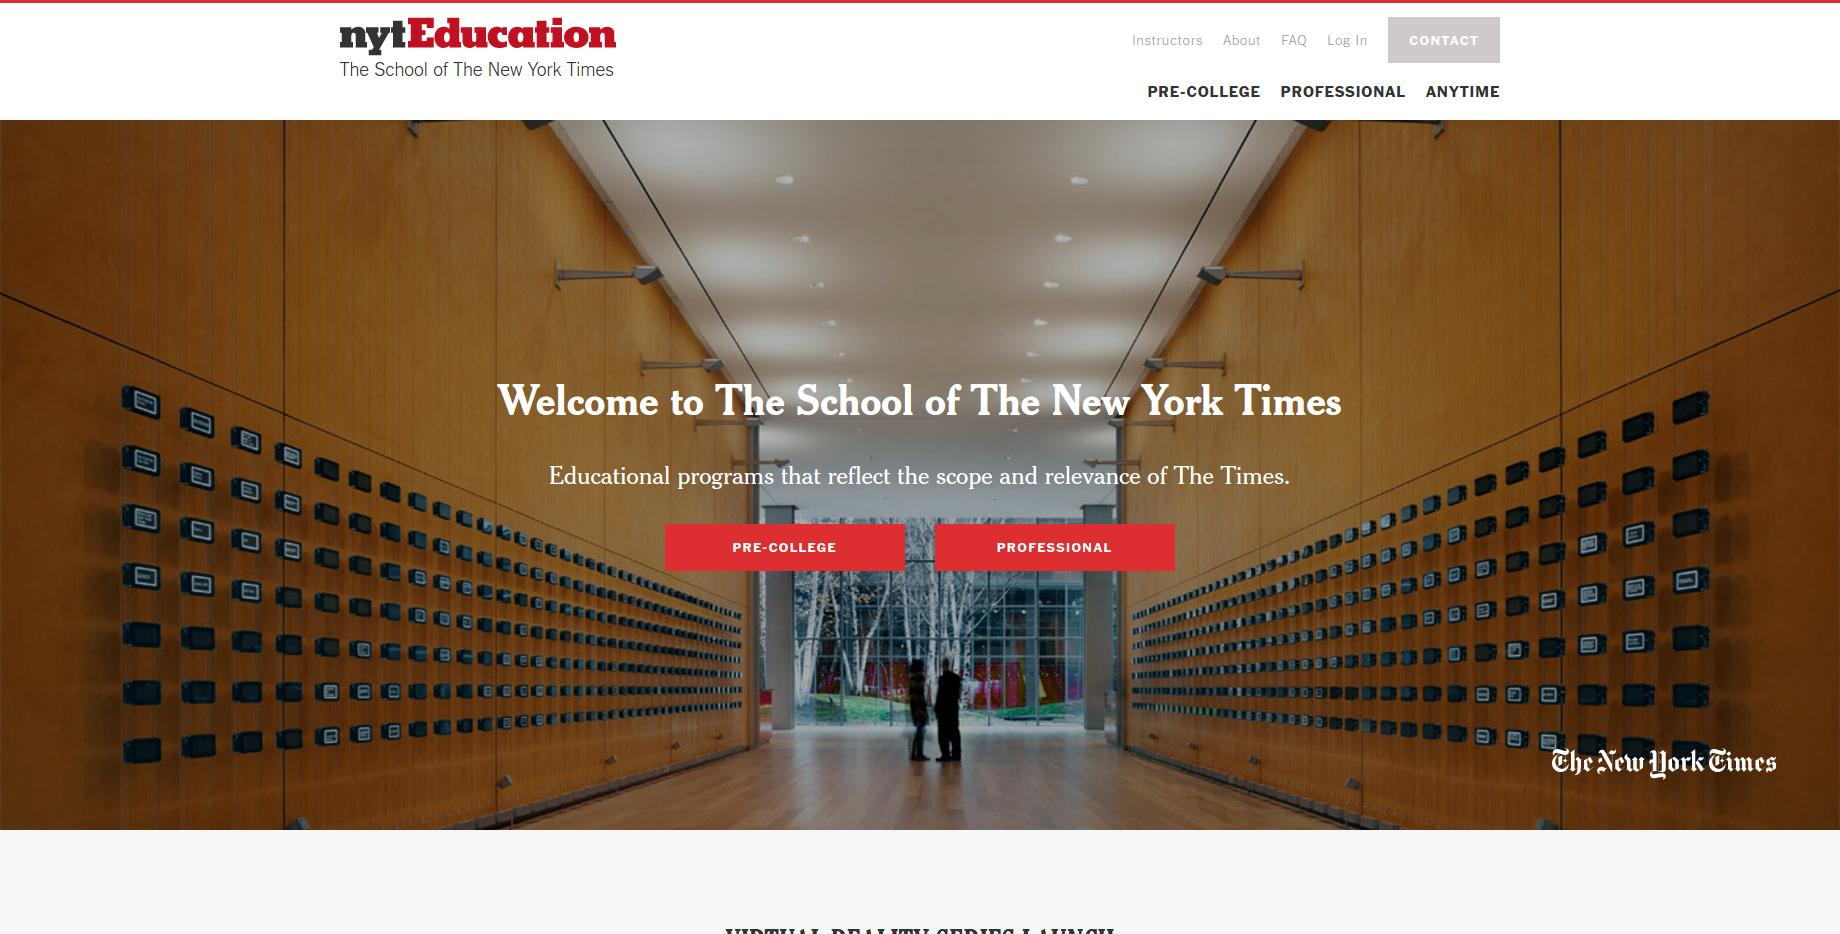 files/images/nytEducation-The-School-of-The-New-York-Times.jpg